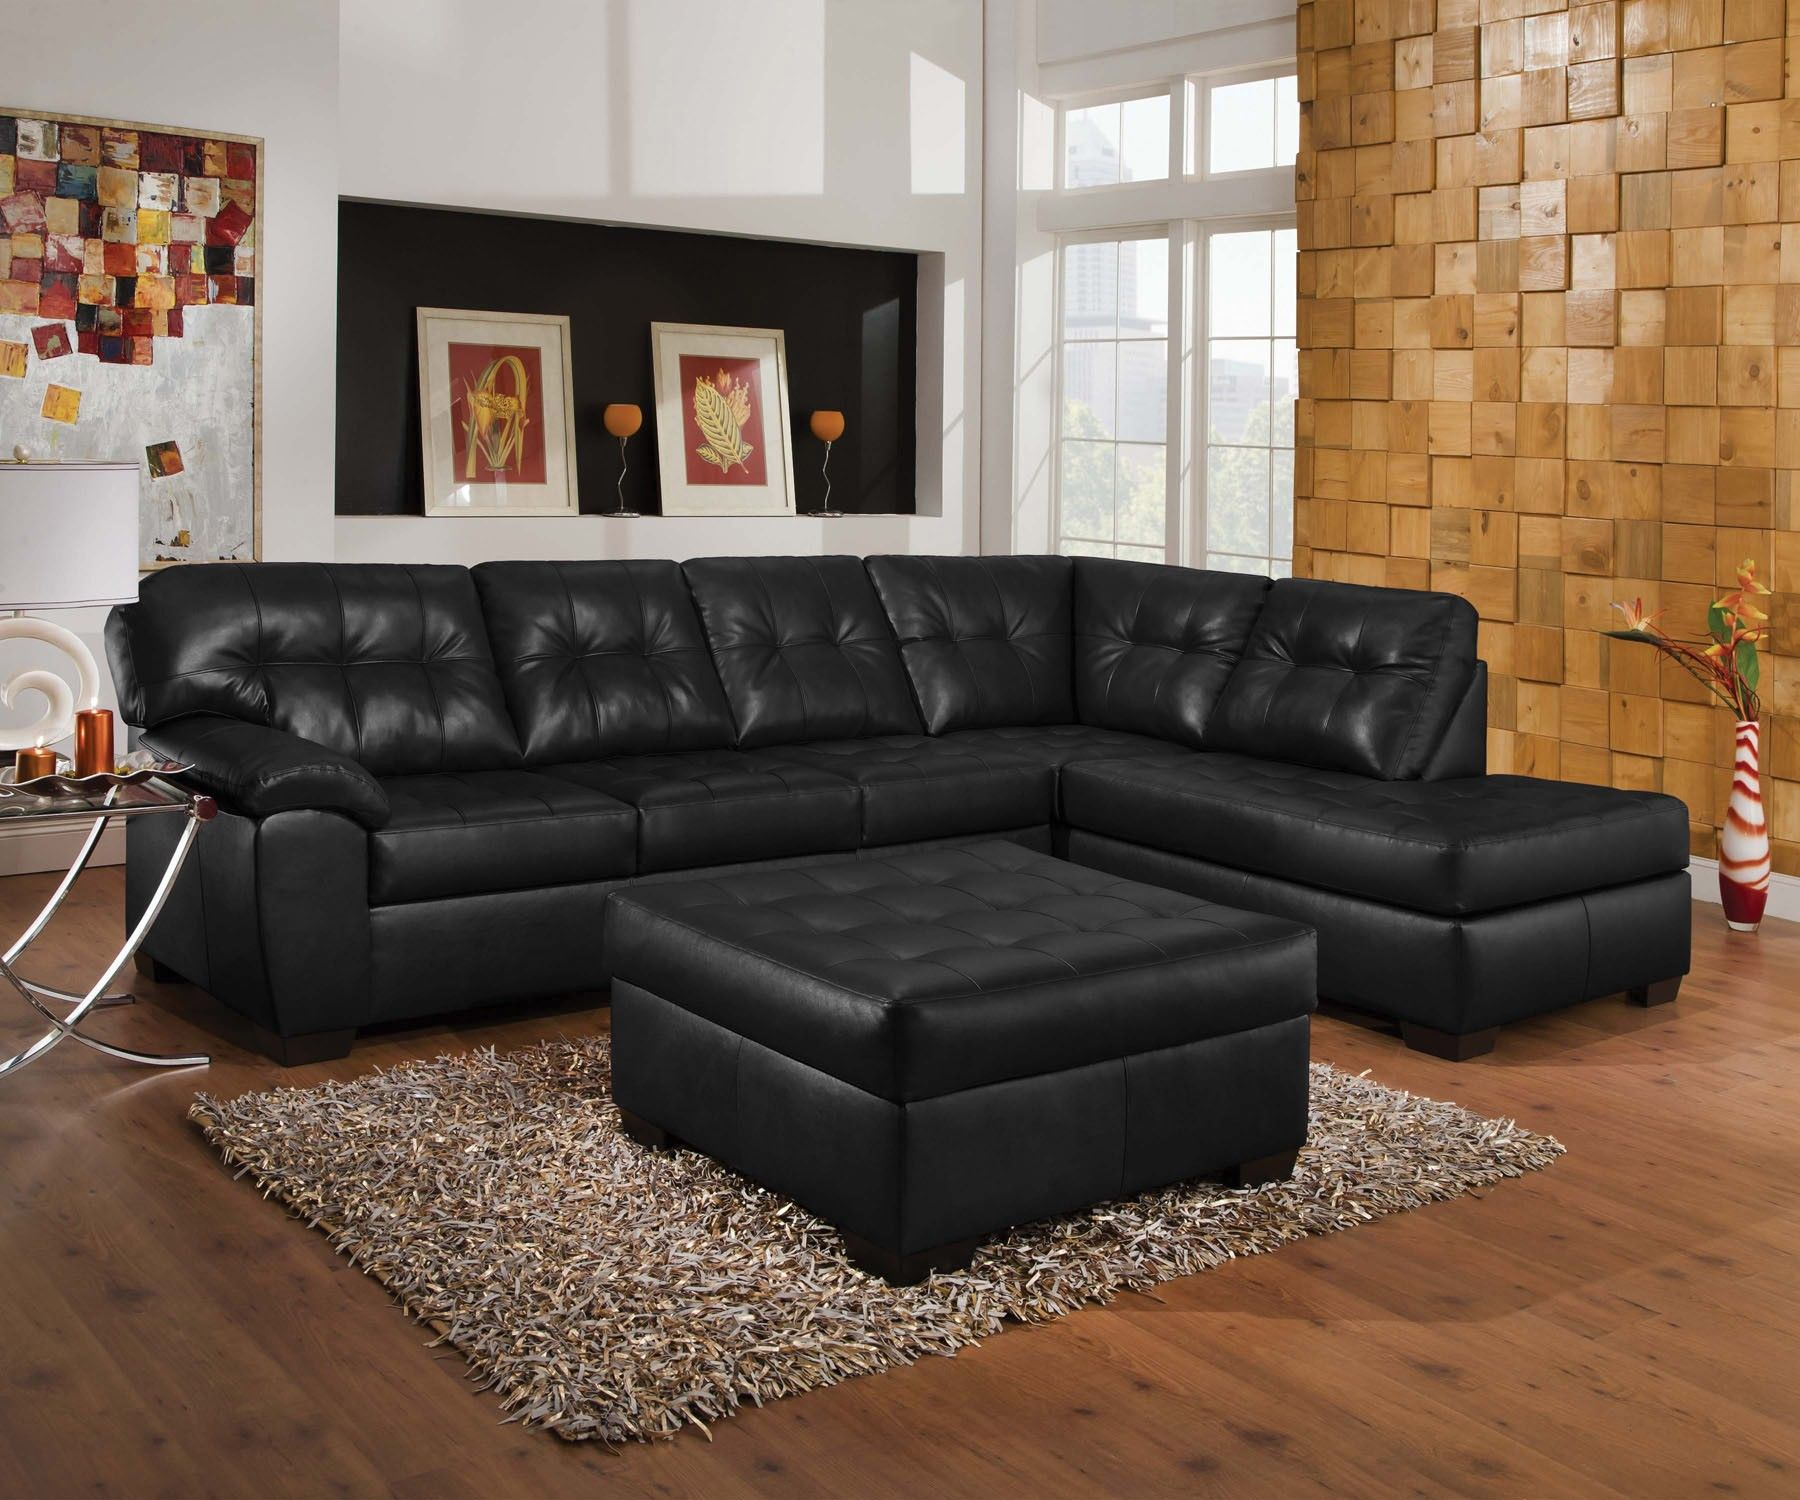 Living Room Furniture Tufted Black Genuine Leather Corner Sofa